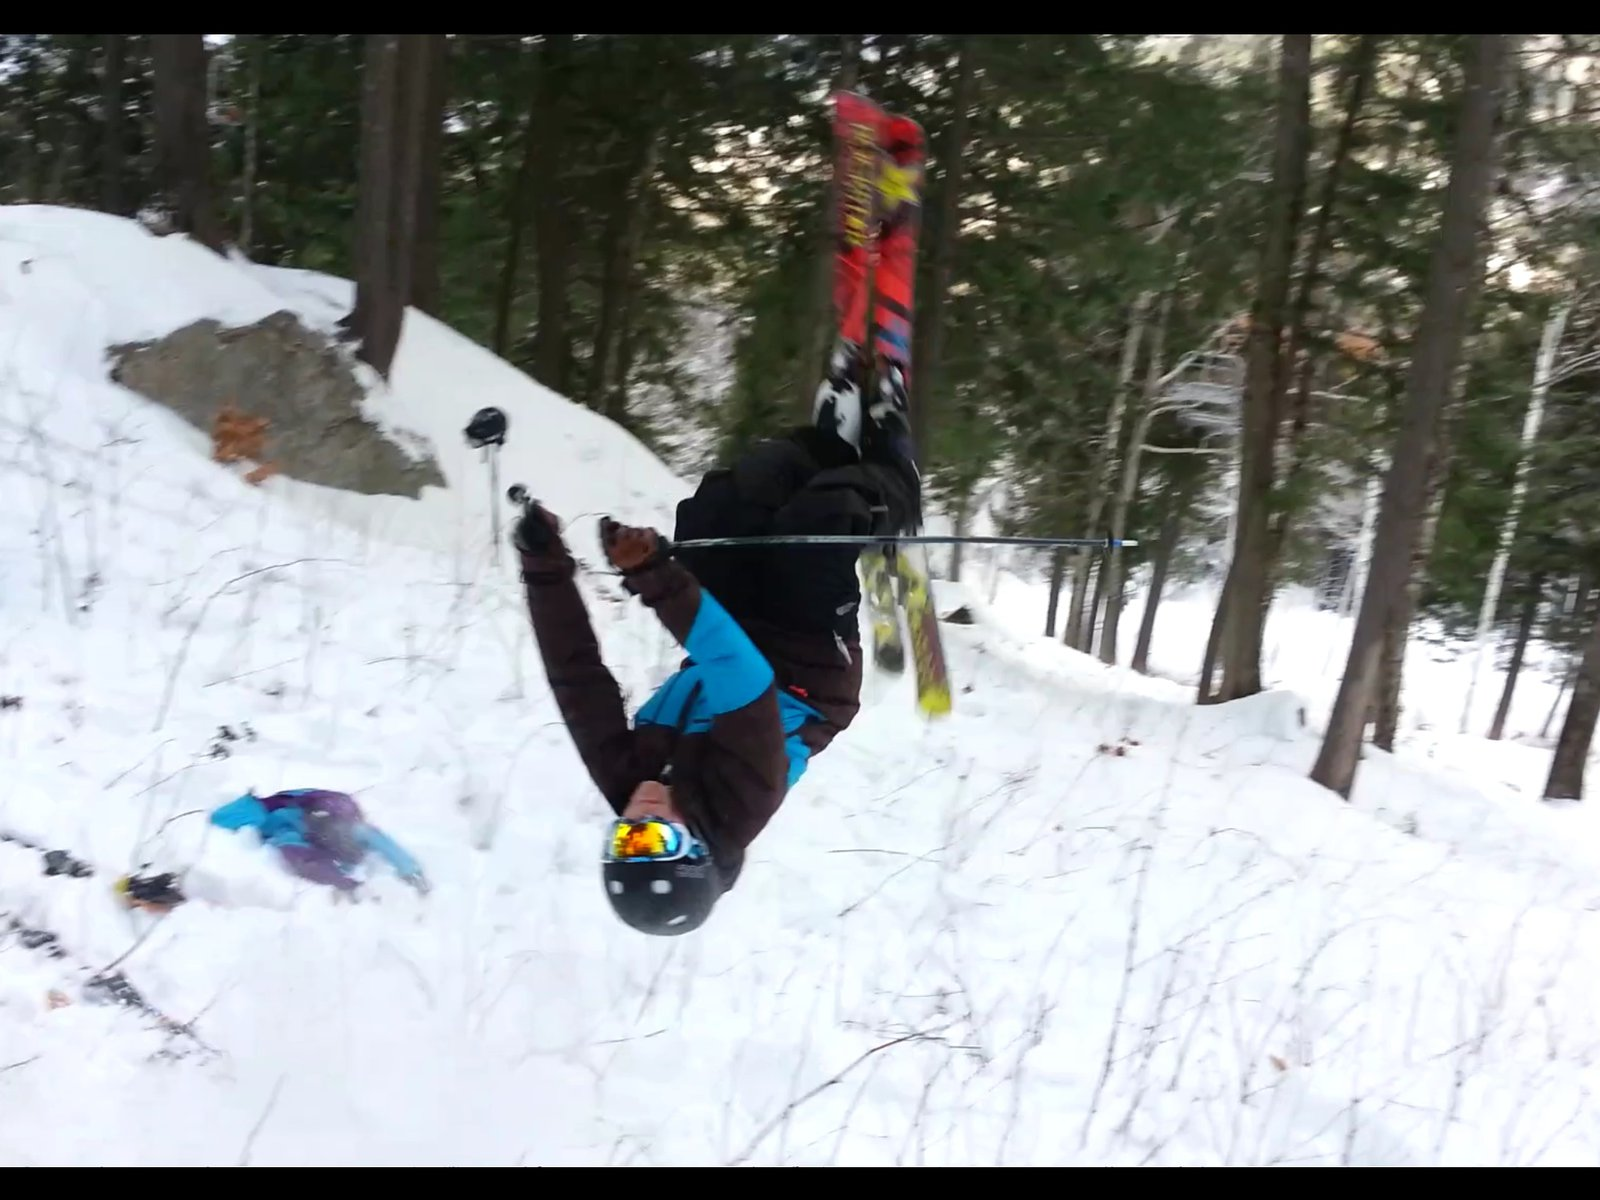 Backflip in woods